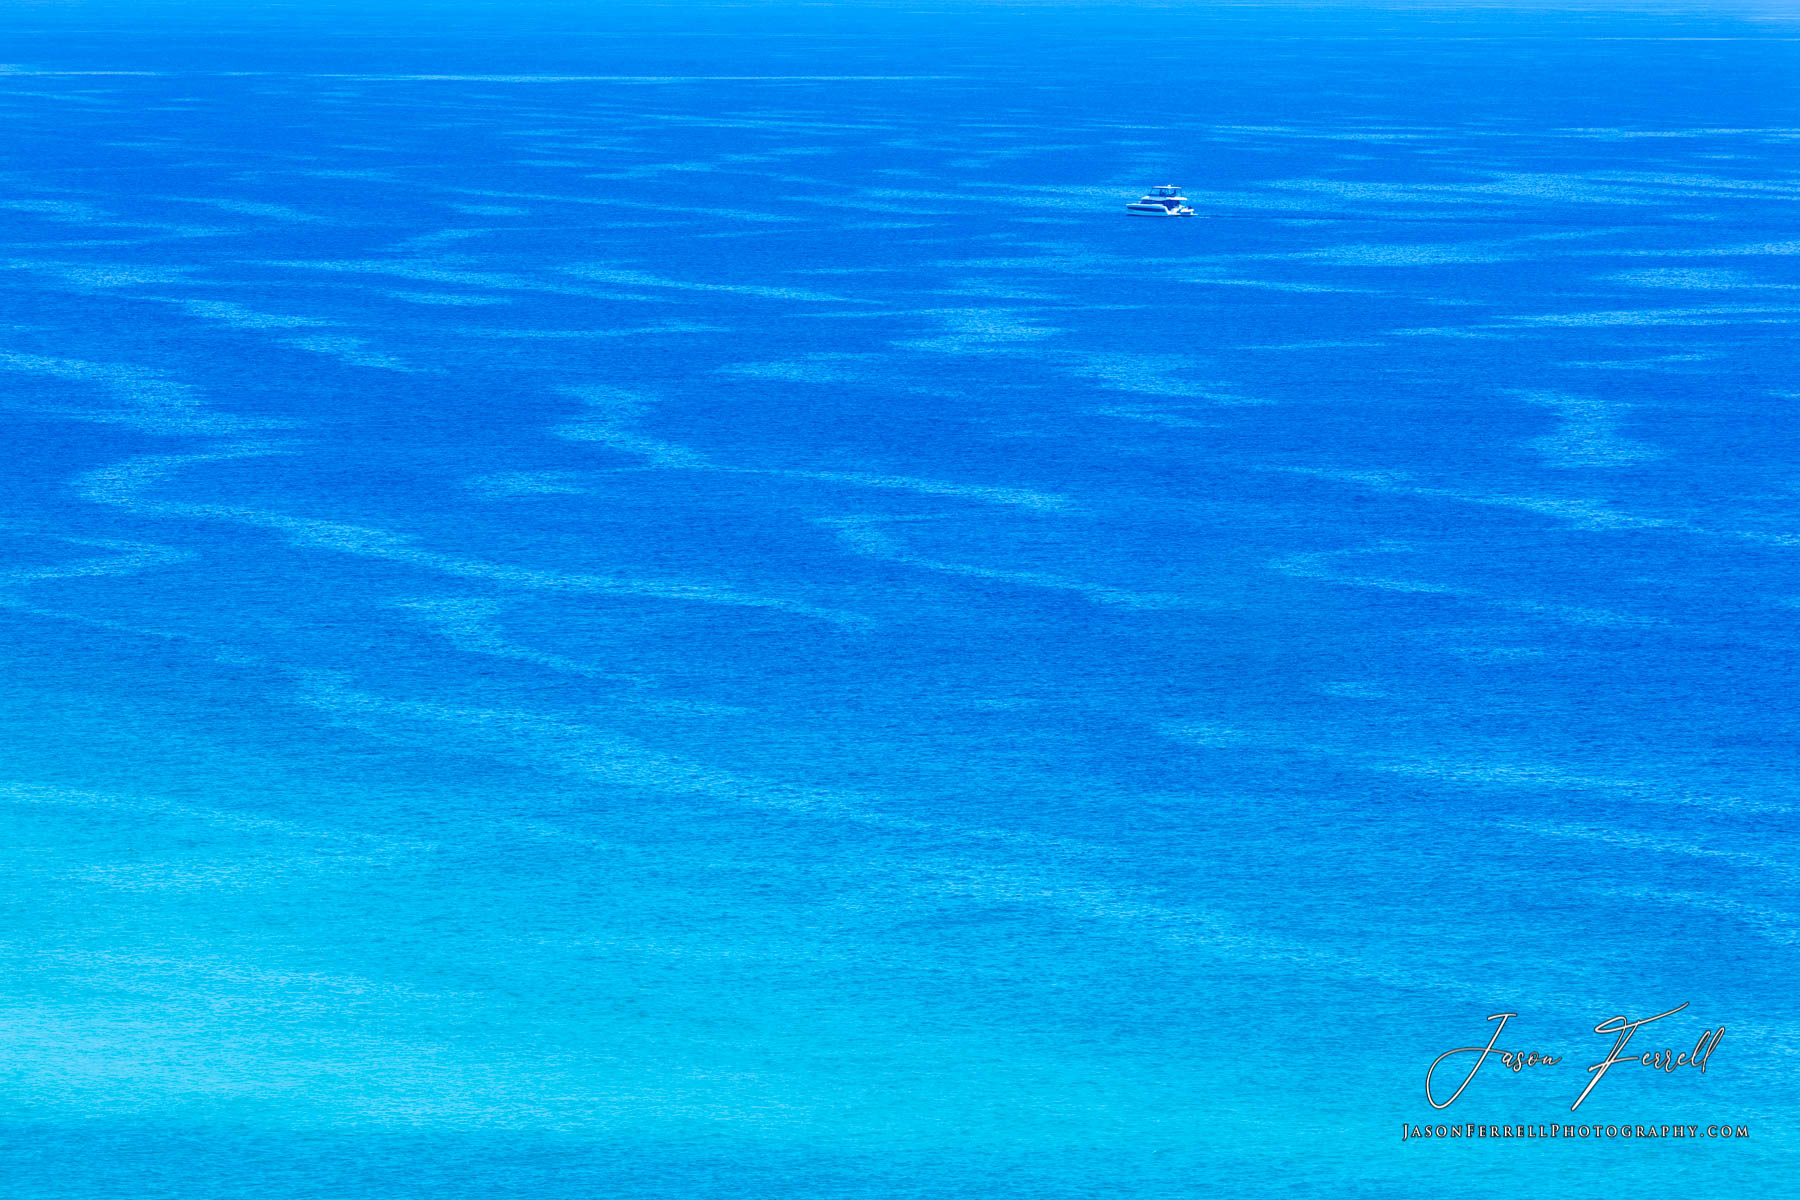 gulf of mexico, yacht, blue, green, water, ocean, clear, santa rosa island, photo